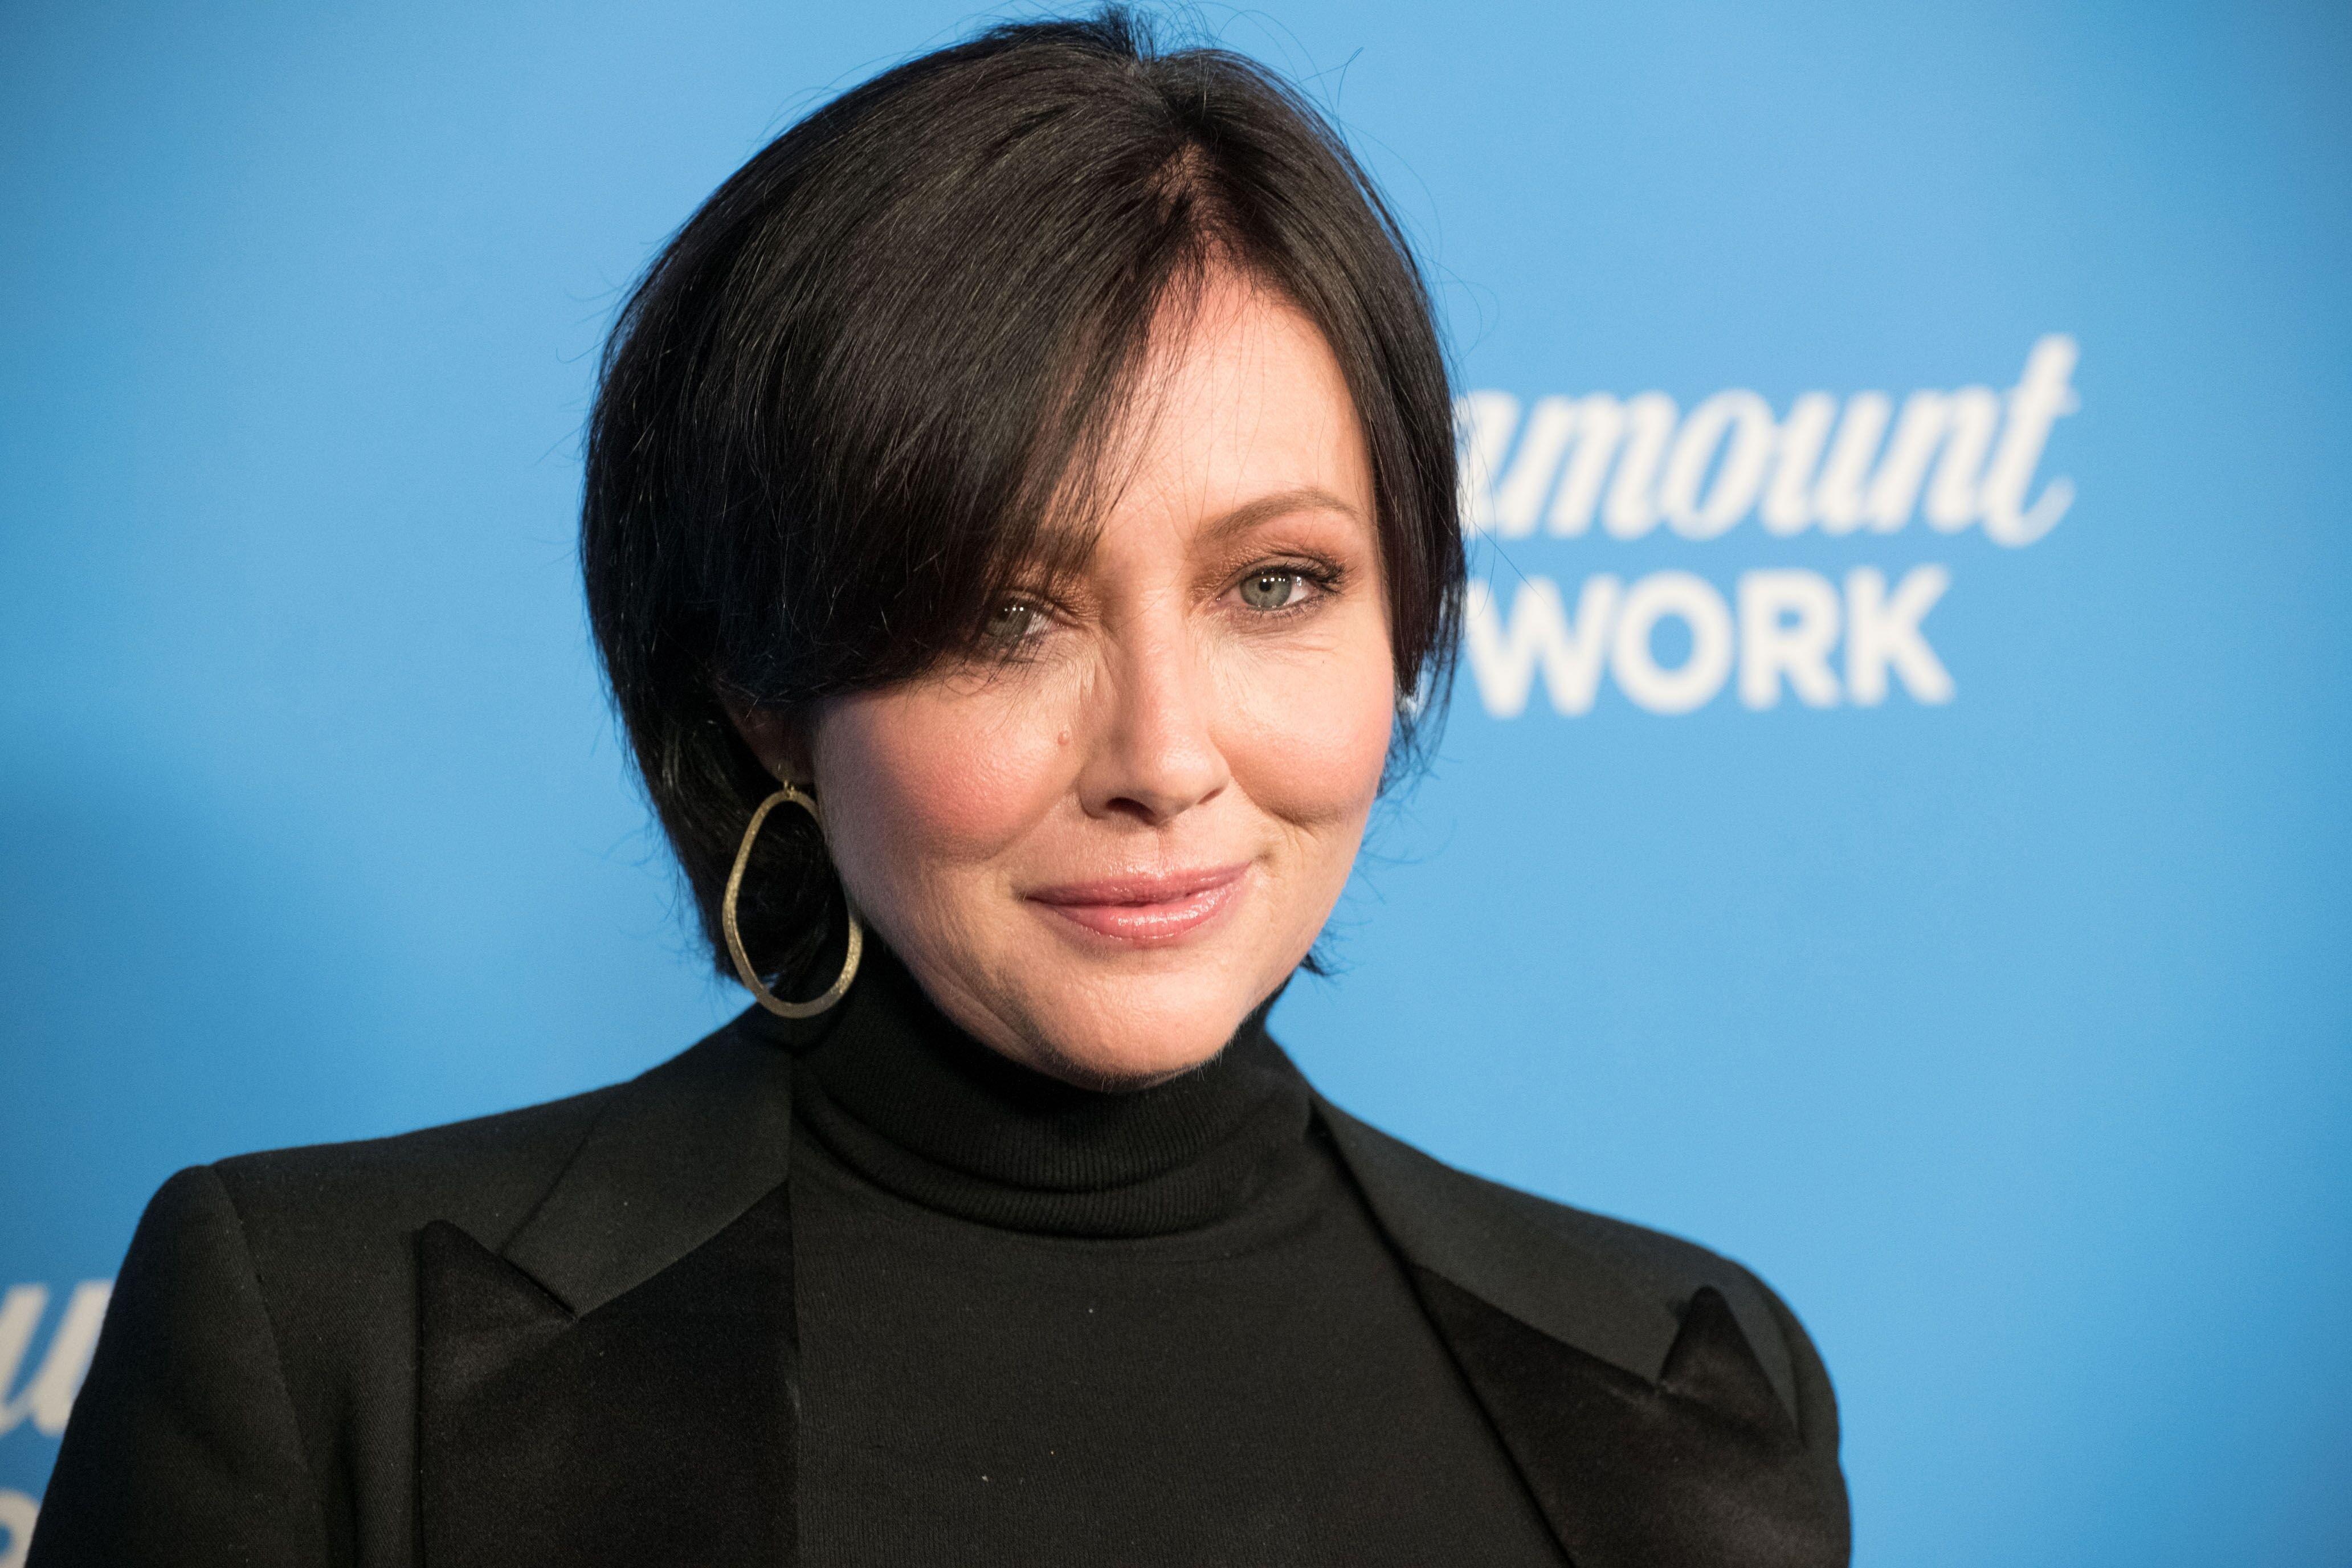 Shannen Doherty attends Paramount Network Launch Party at Sunset Tower in Los Angeles, California | Photo: Getty Images